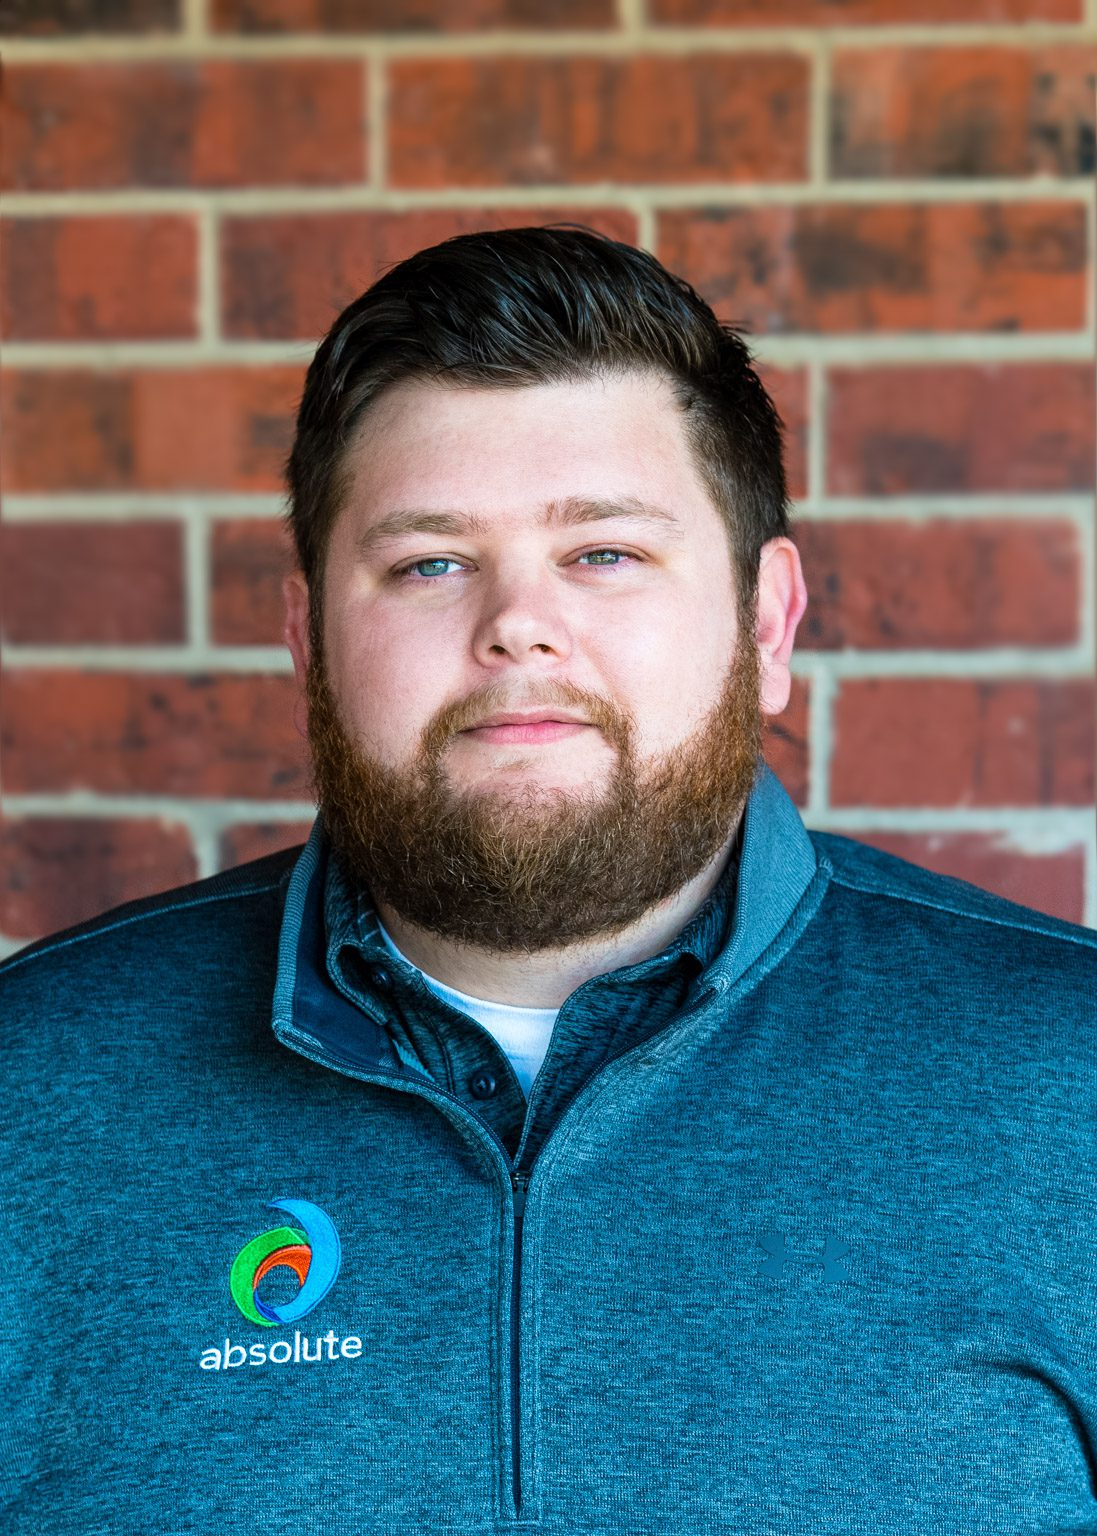 Absolute Technology Solutions - Zackary Thomas